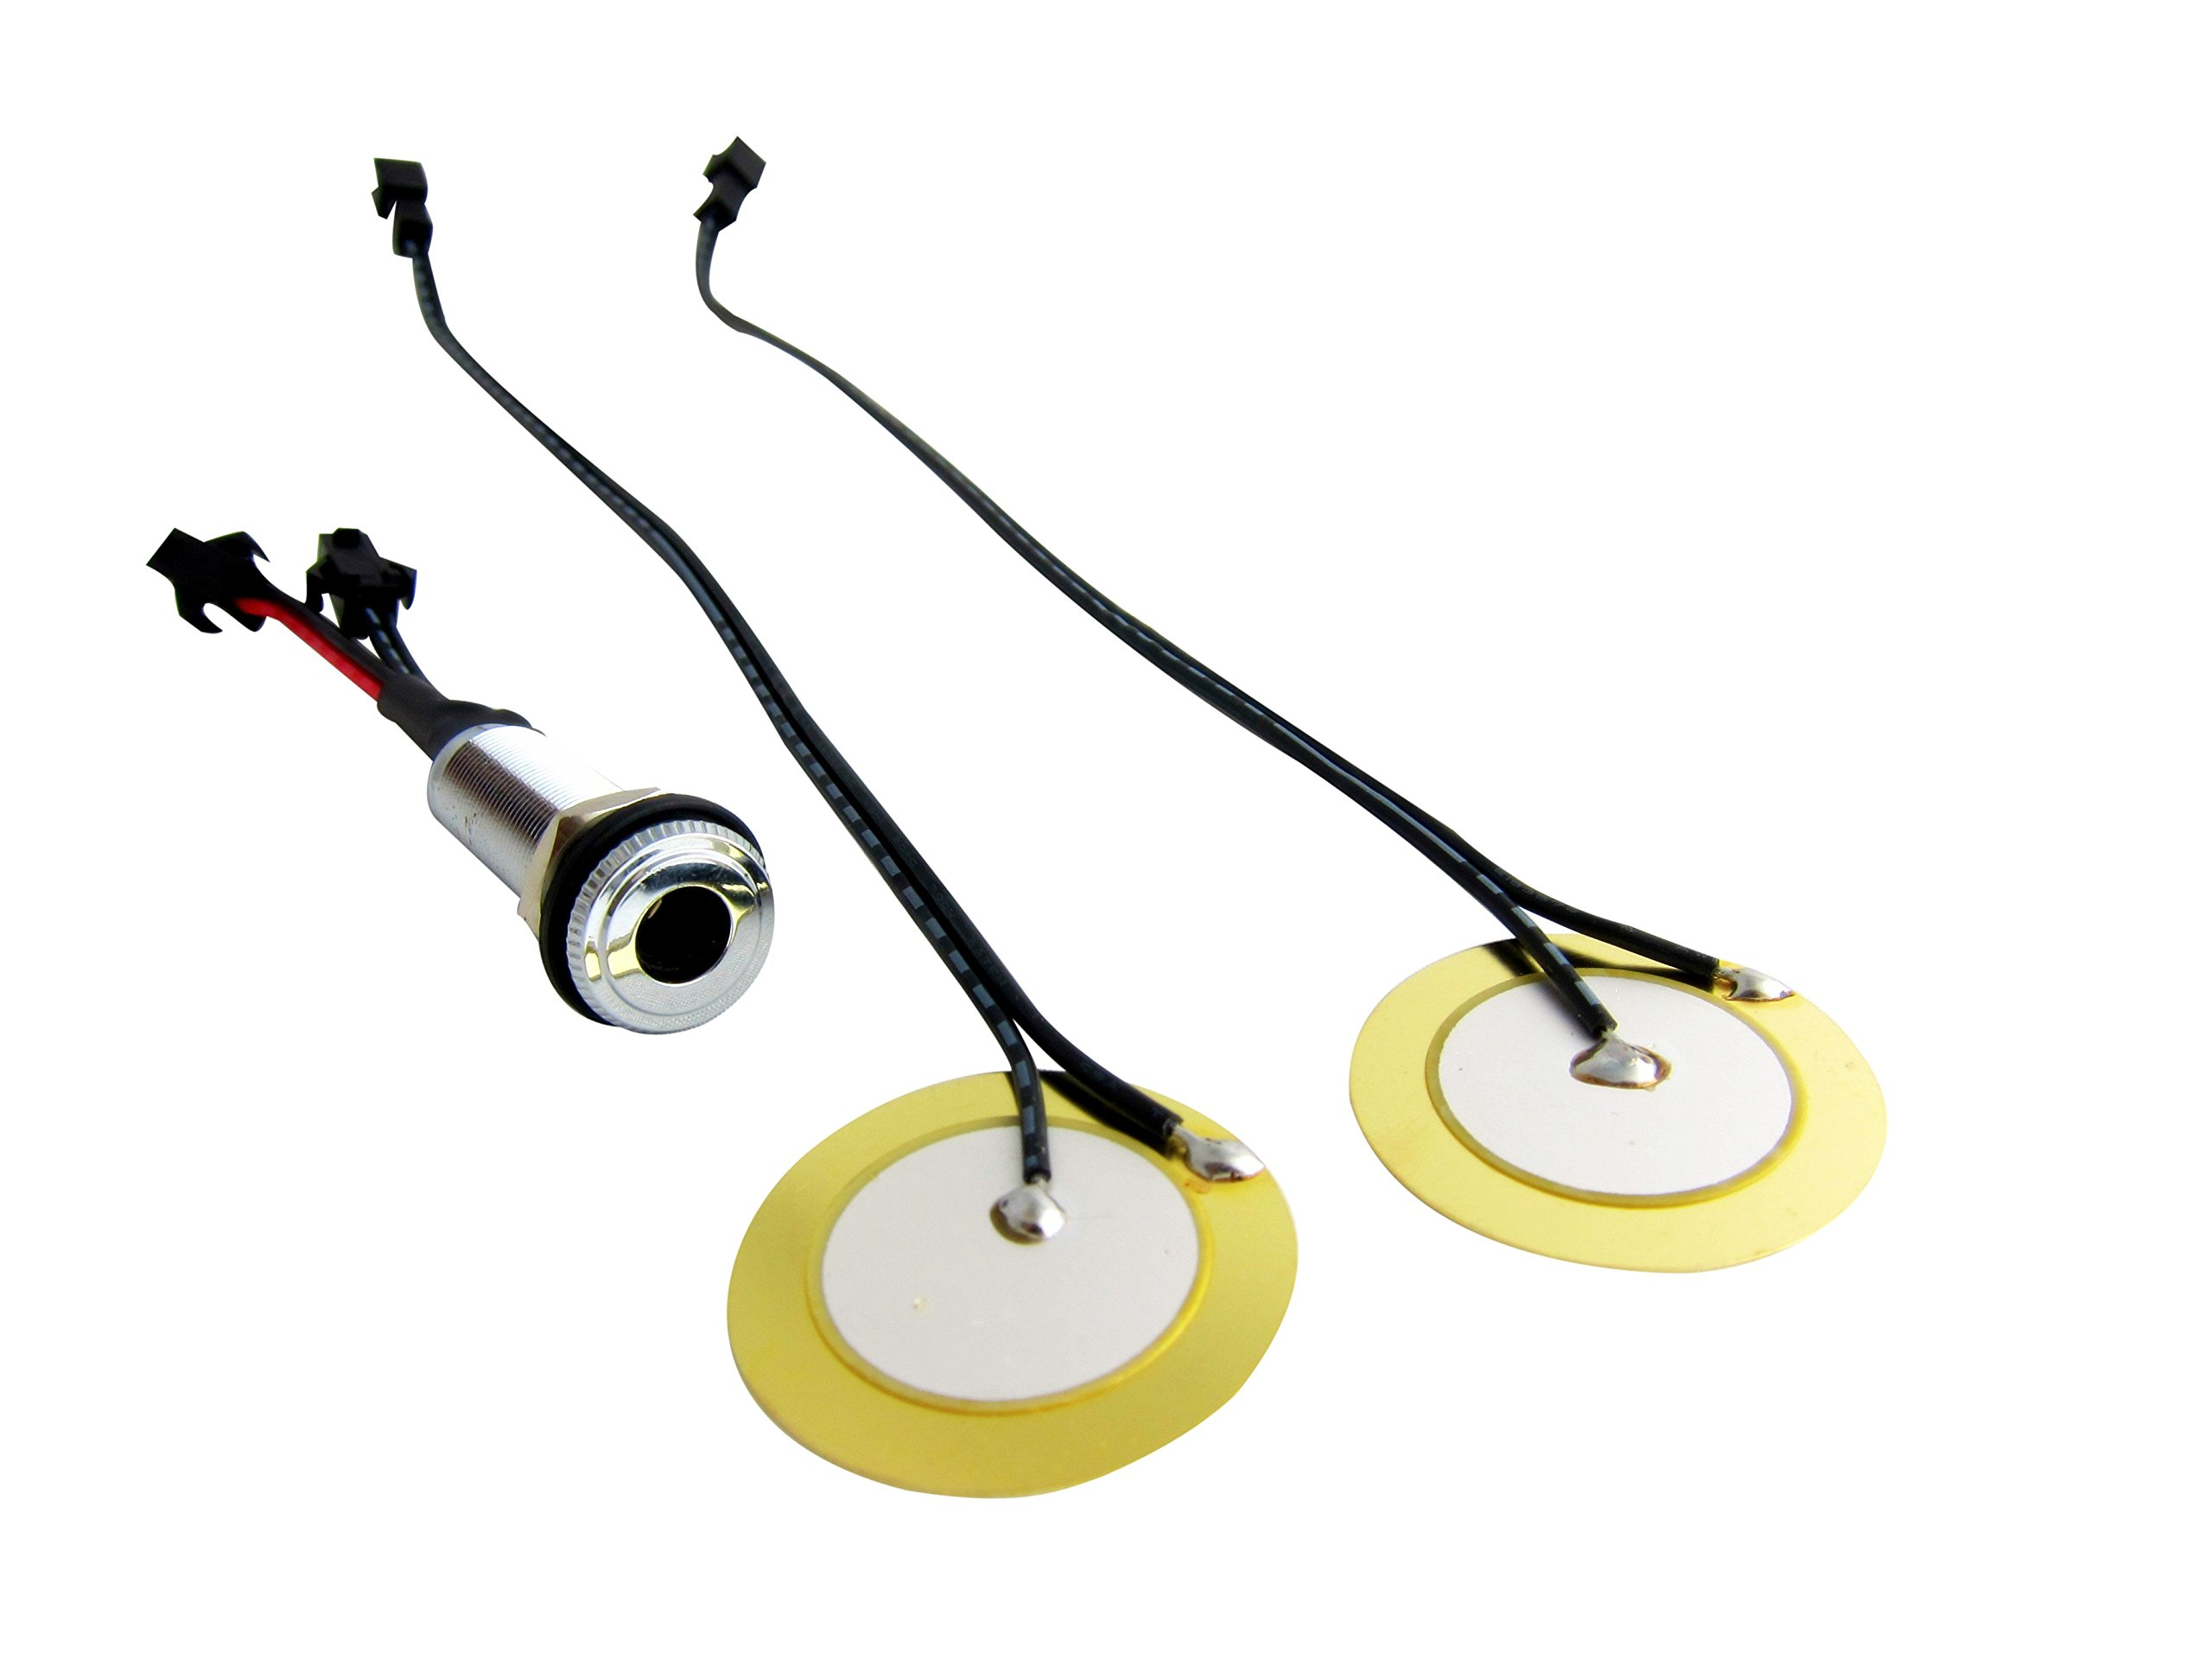 Goedrum Drum Dual Triggers for DIY electronic drum / For Use on Acoustic Wood Drum Shell